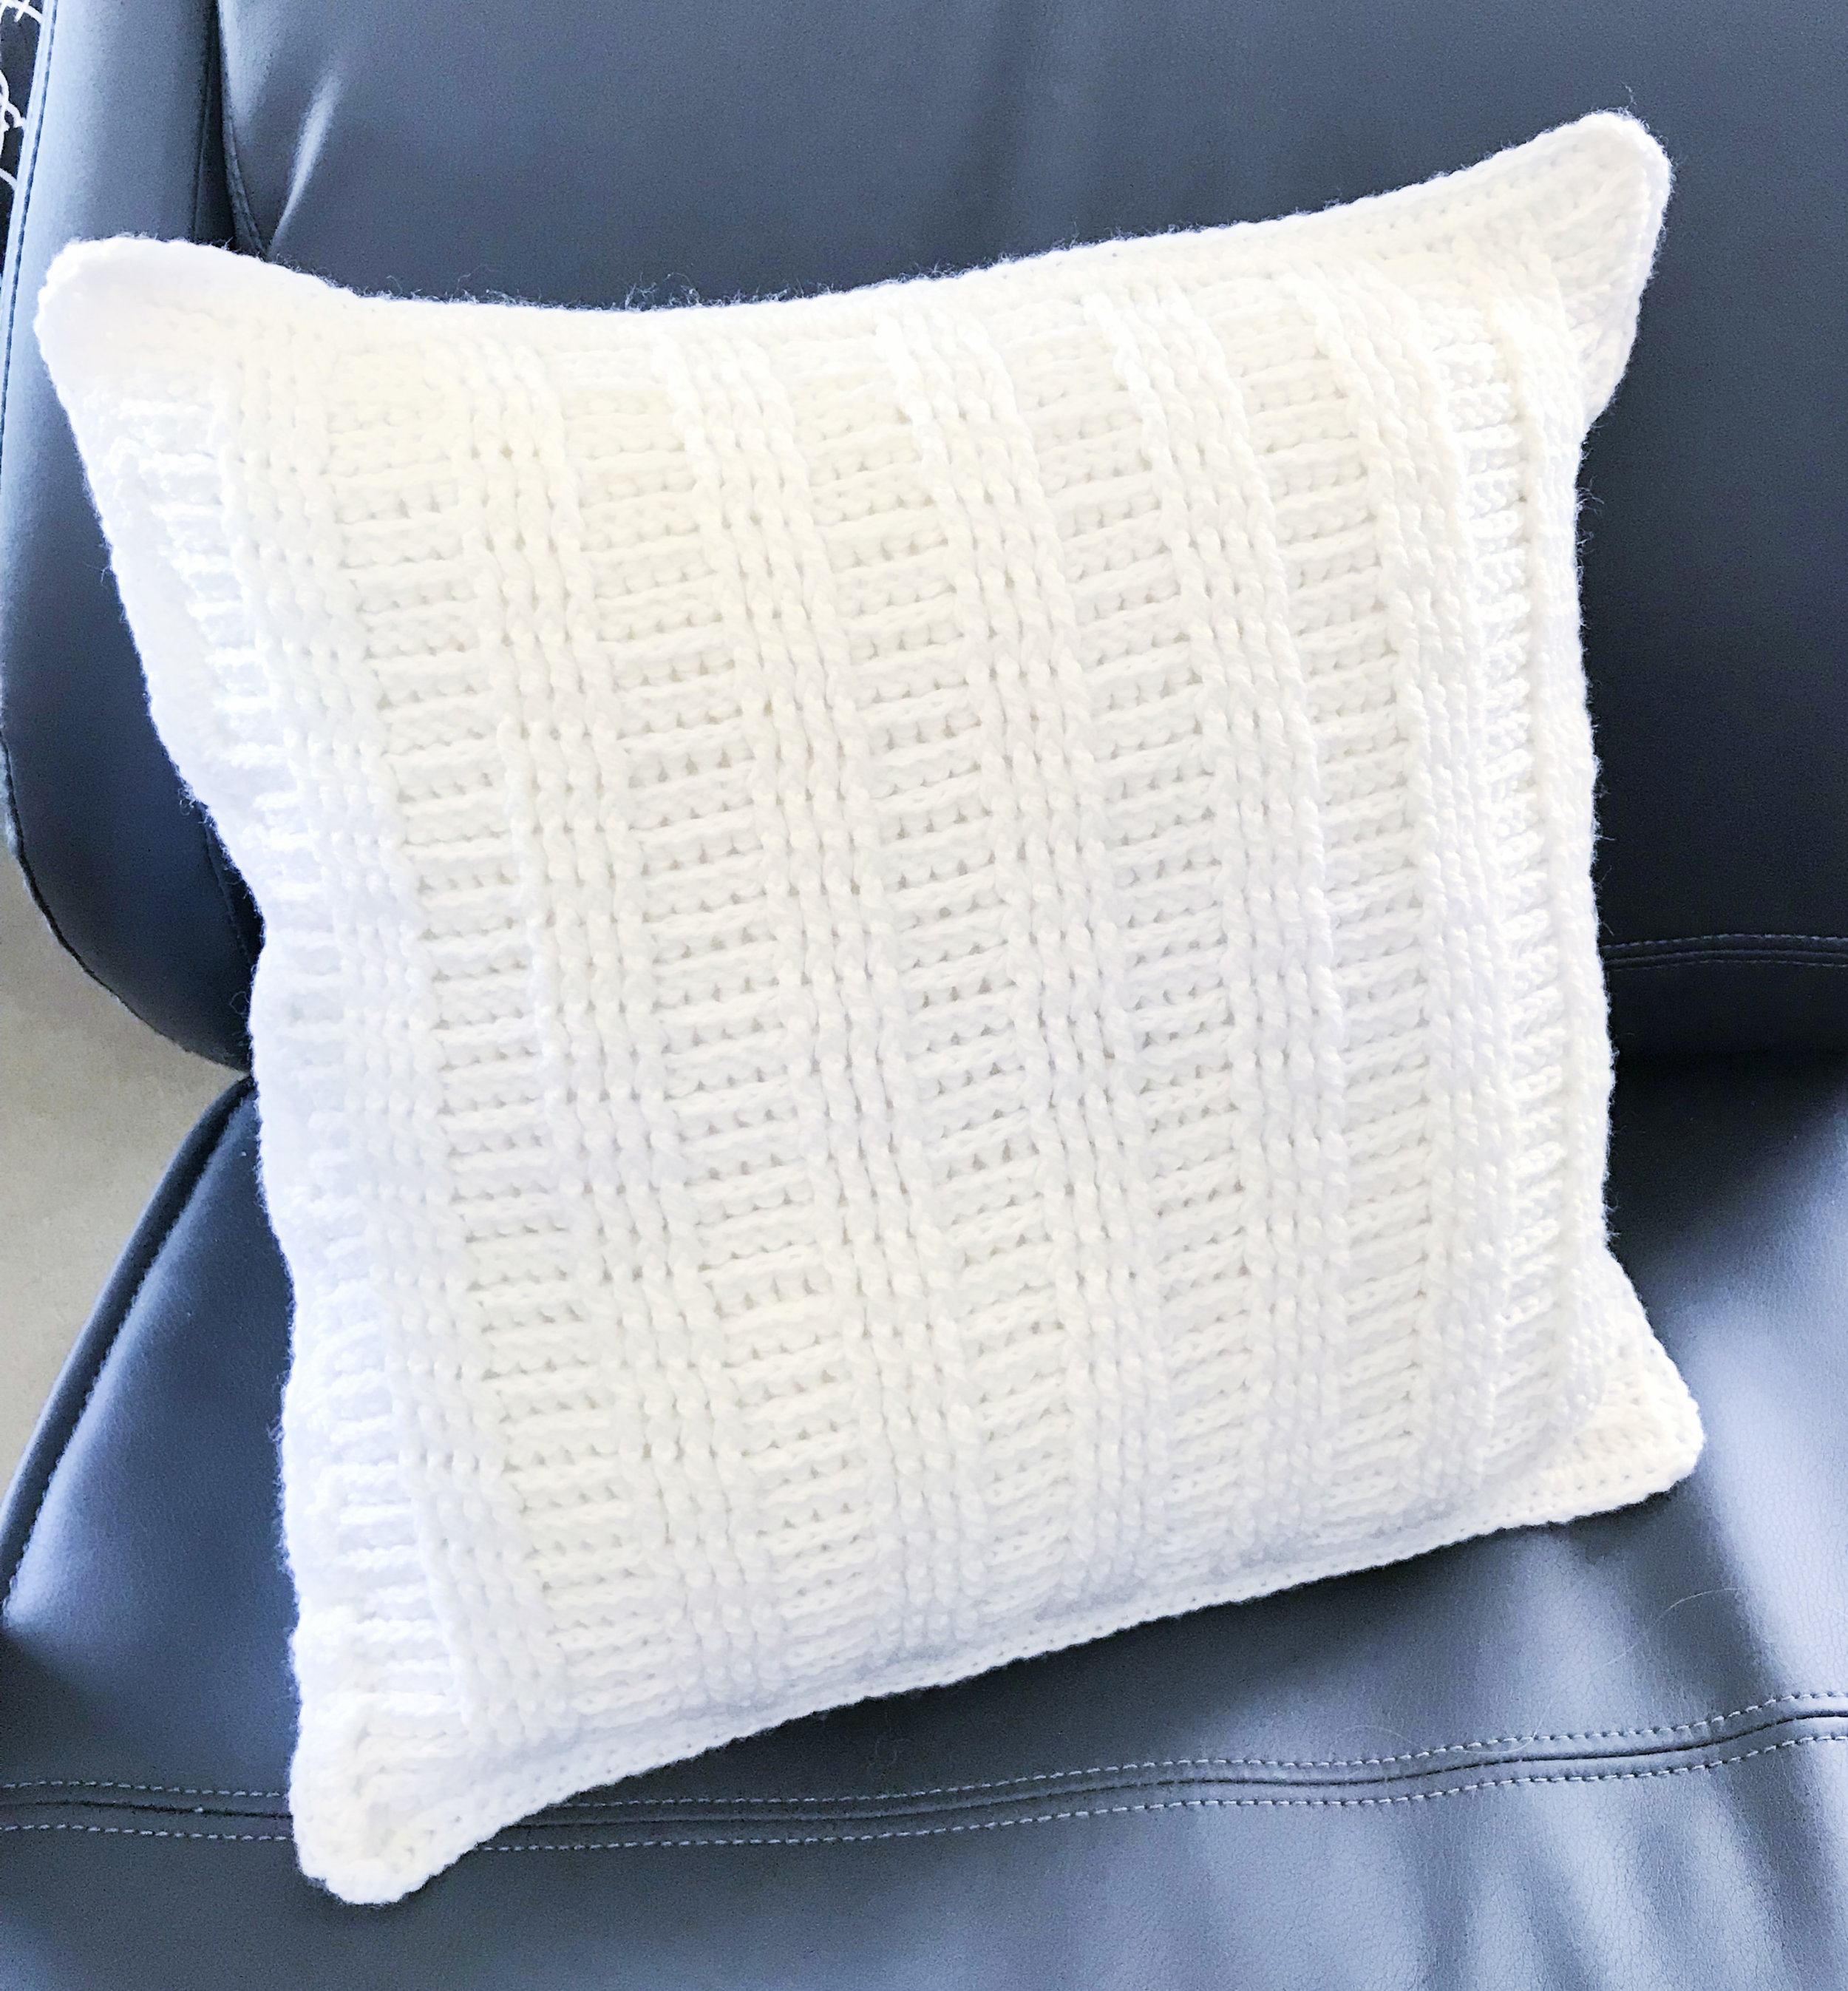 Khlaidri Crochet Worsted Weight Pillow Cover